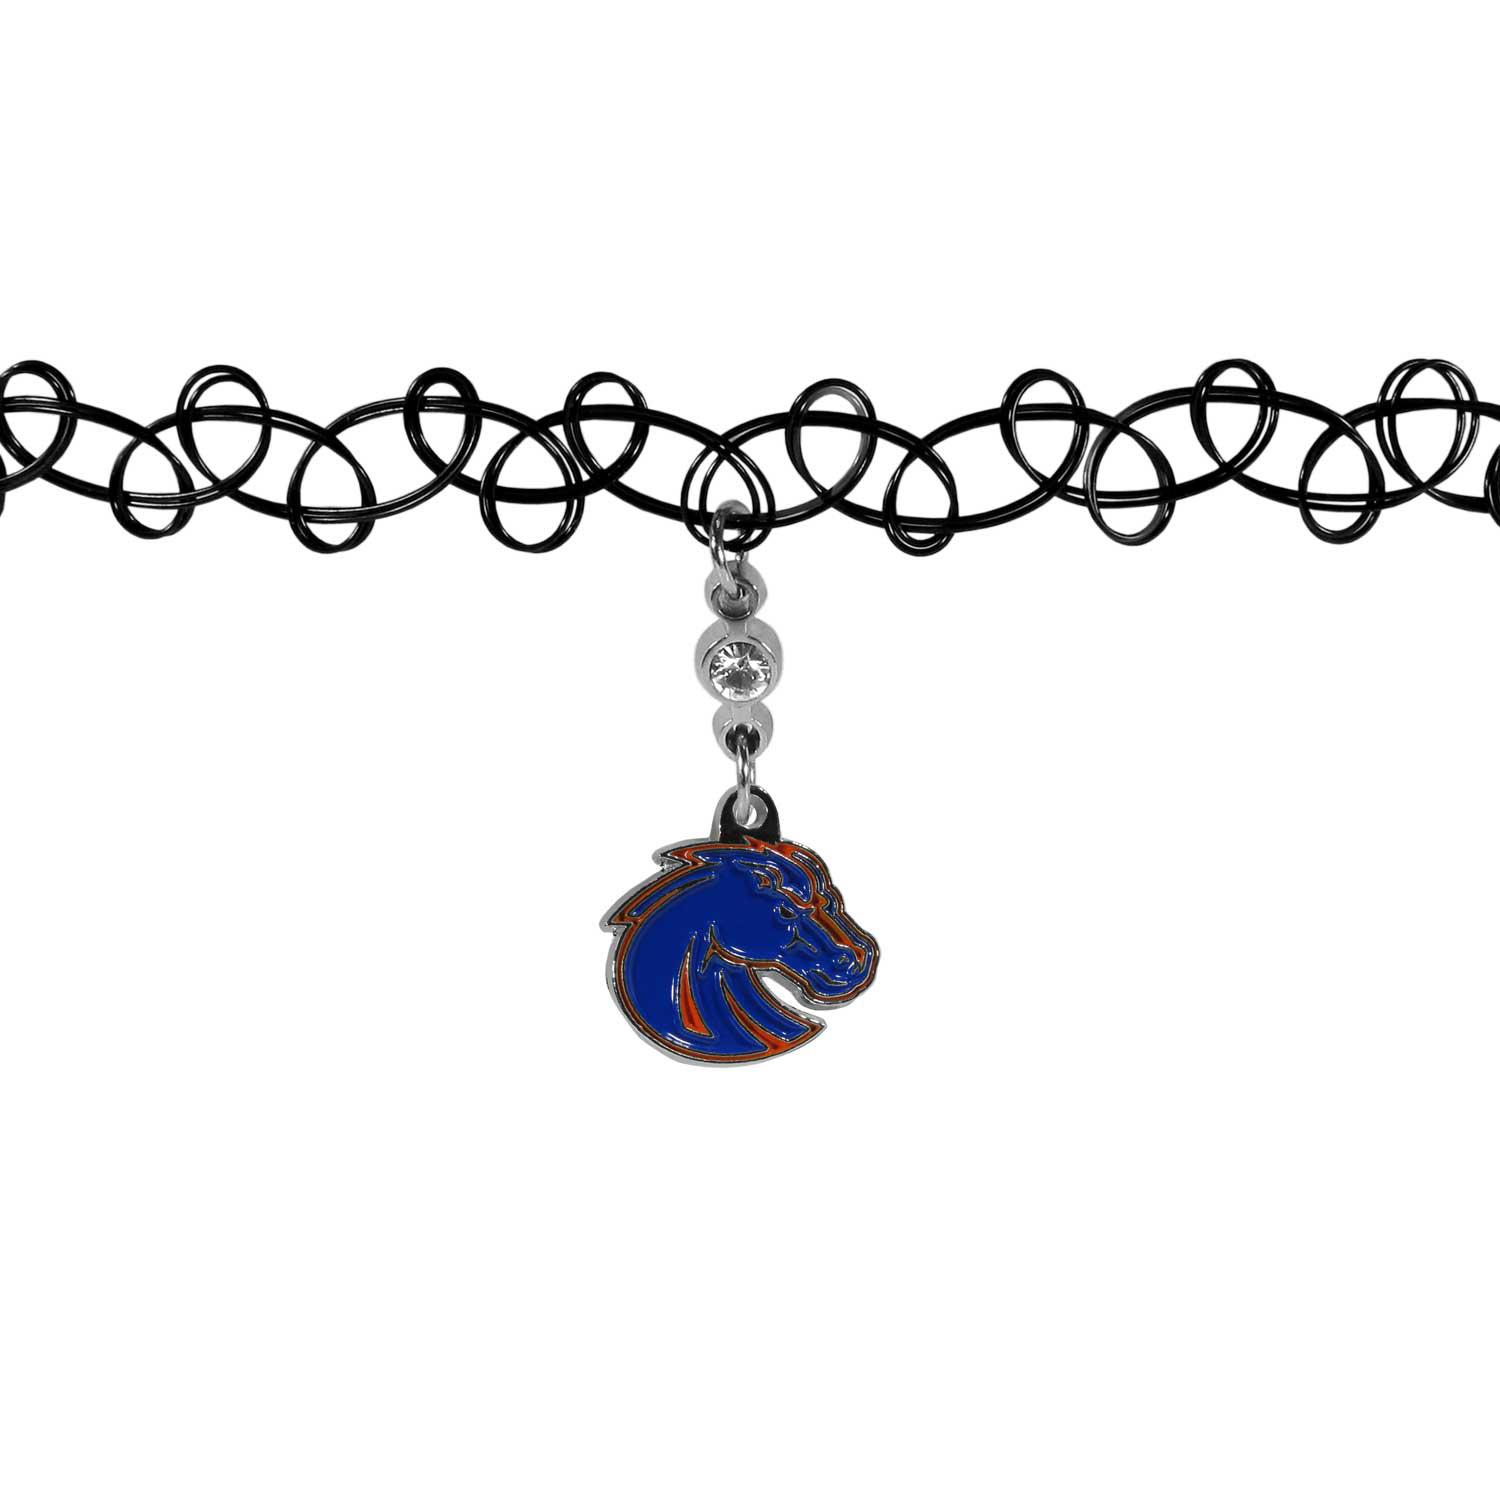 Boise St. Broncos Knotted Choker - This retro, knotted choker is a cool and unique piece of fan jewelry. The tattoo style choker features a high polish Boise St. Broncos charm with rhinestone accents.